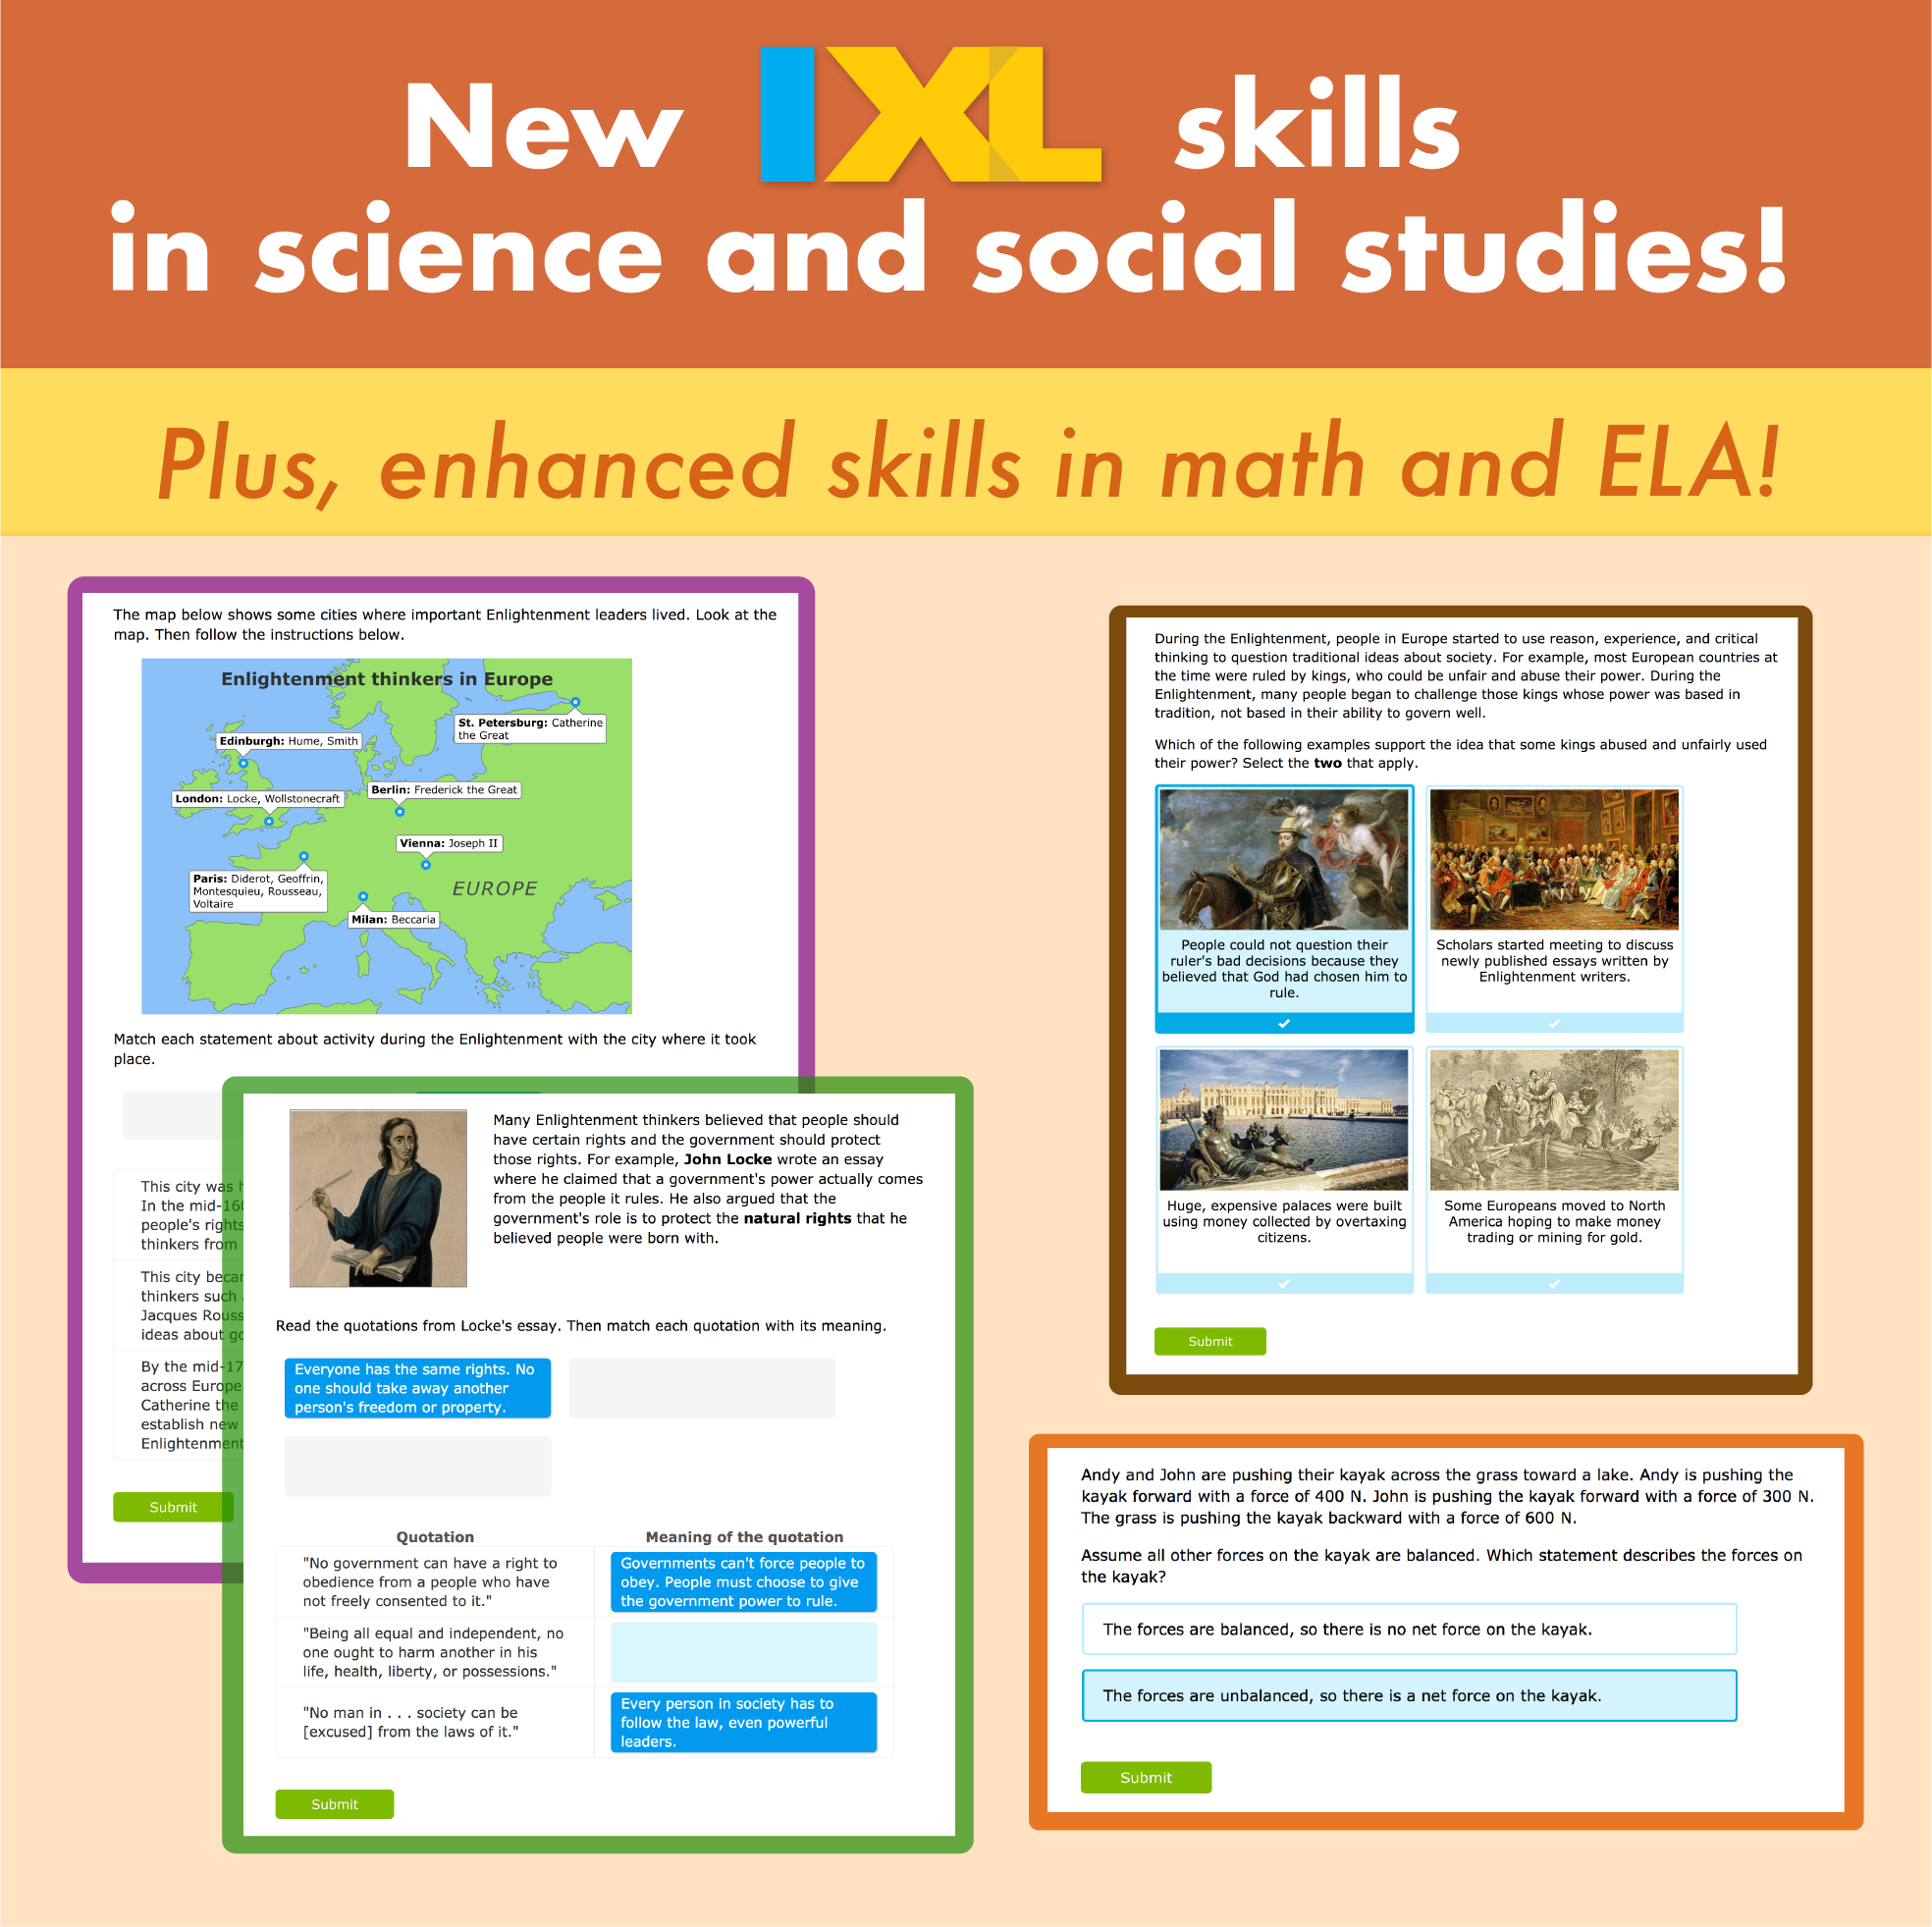 New social studies and science skills just in time for fall!